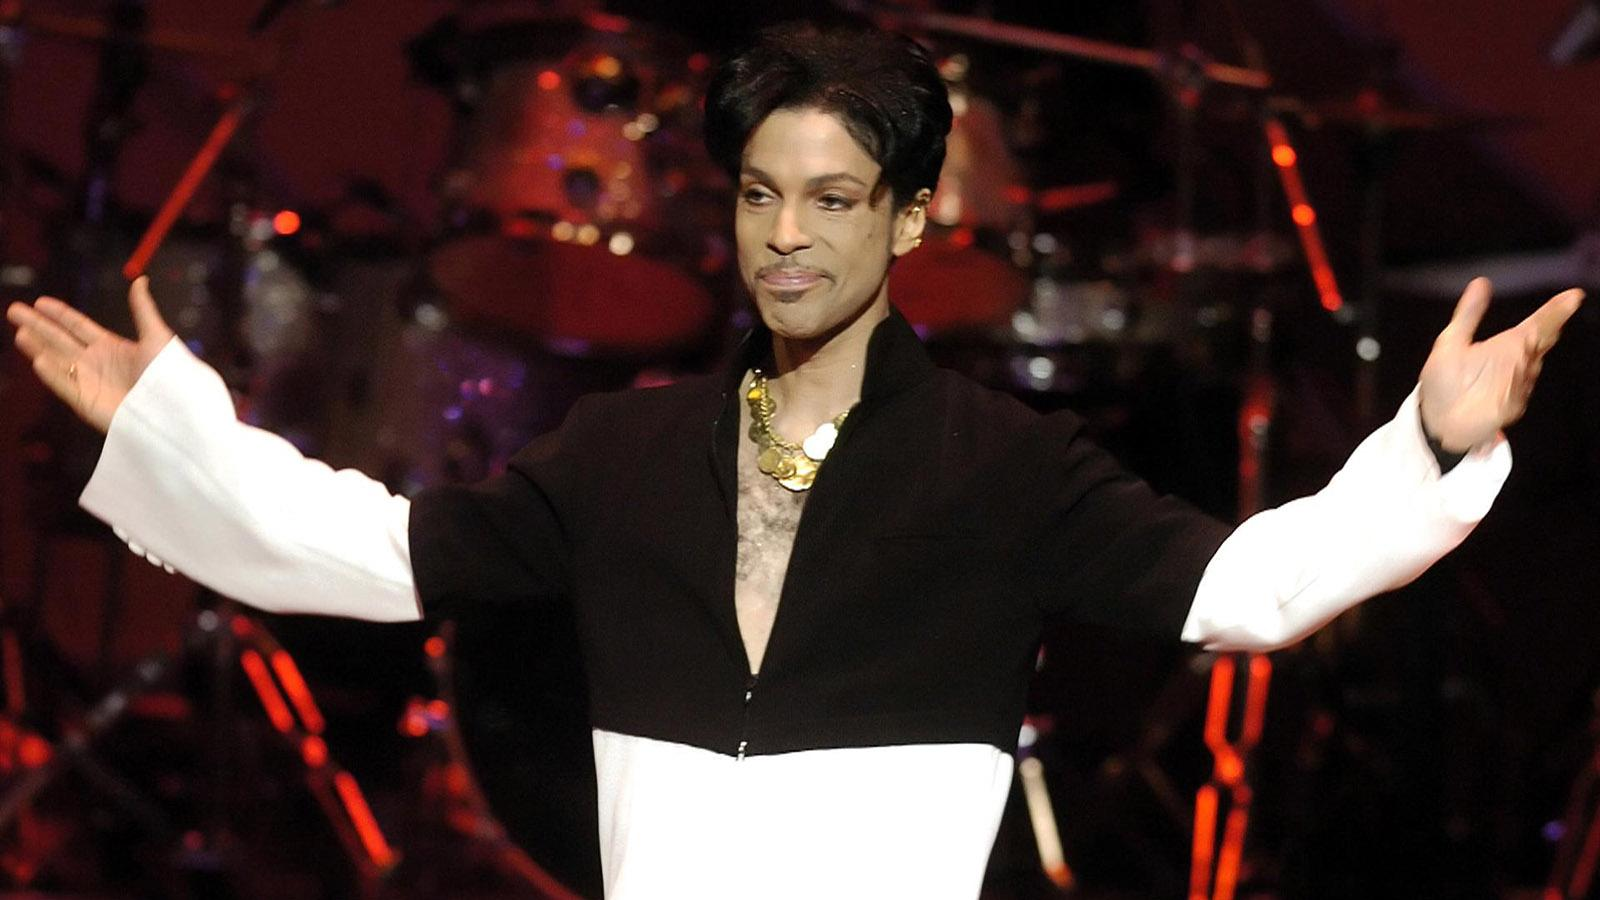 Prince Reportedly Possessed Prescription Opioids At Time Of Death